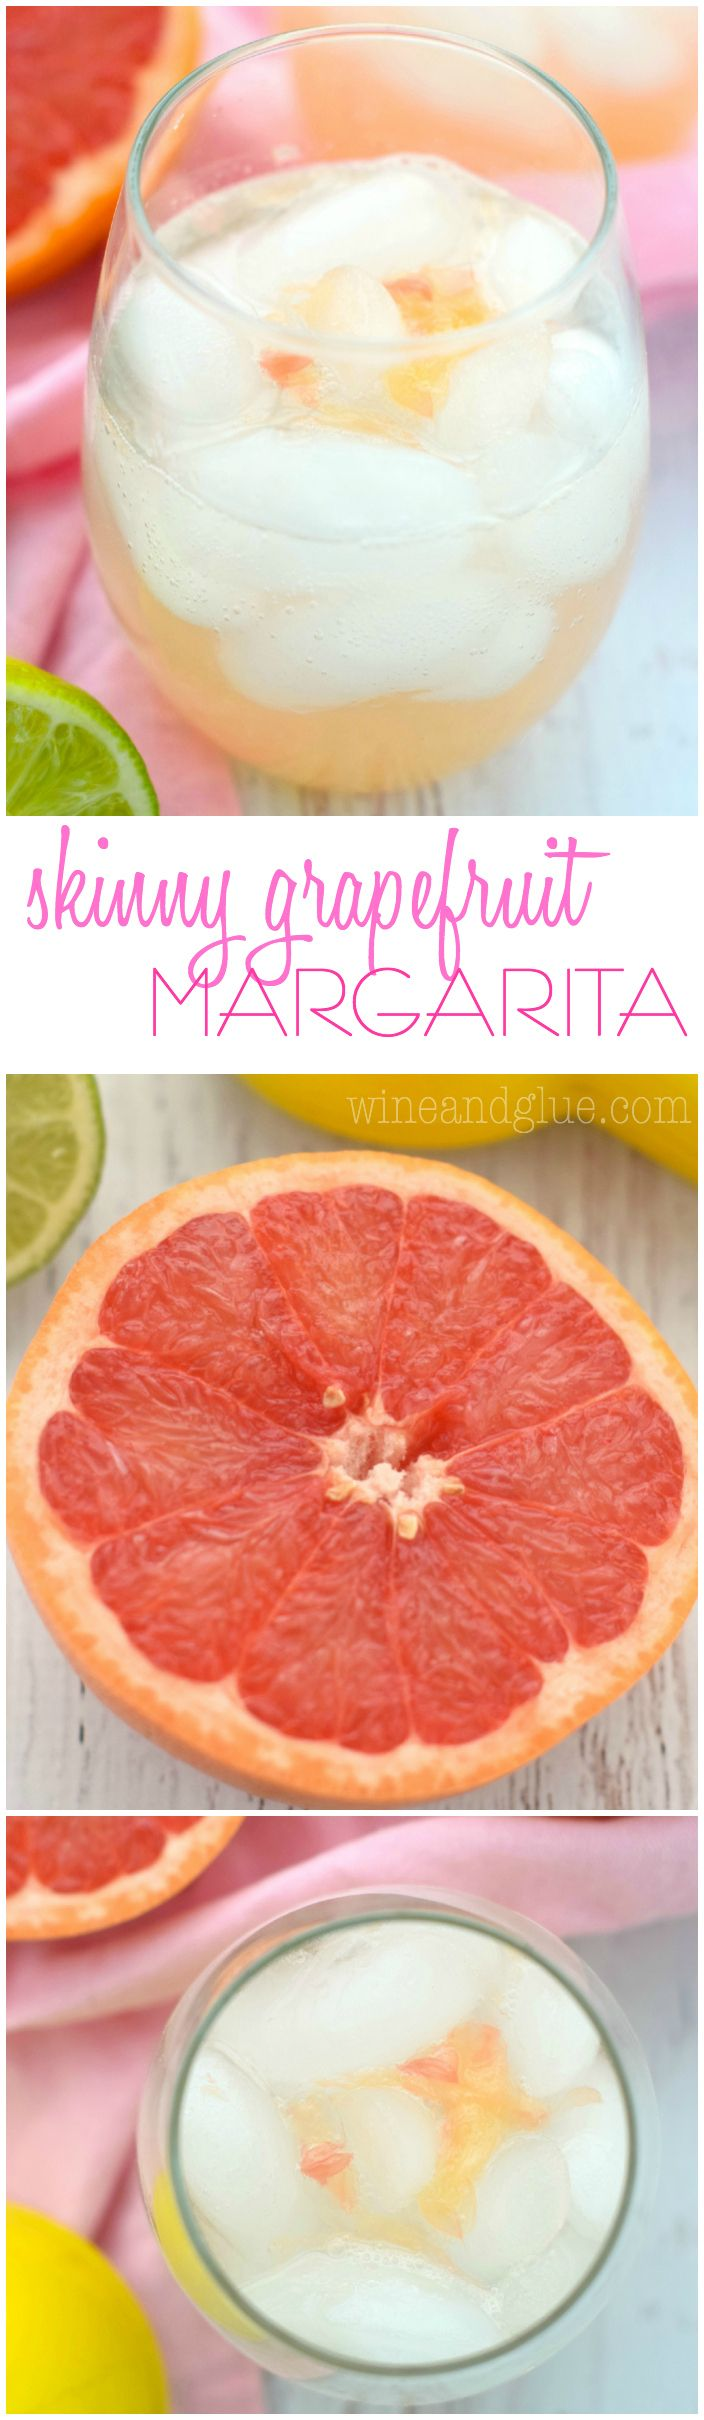 This Skinny Grapefruit Margarita is the perfect amount of